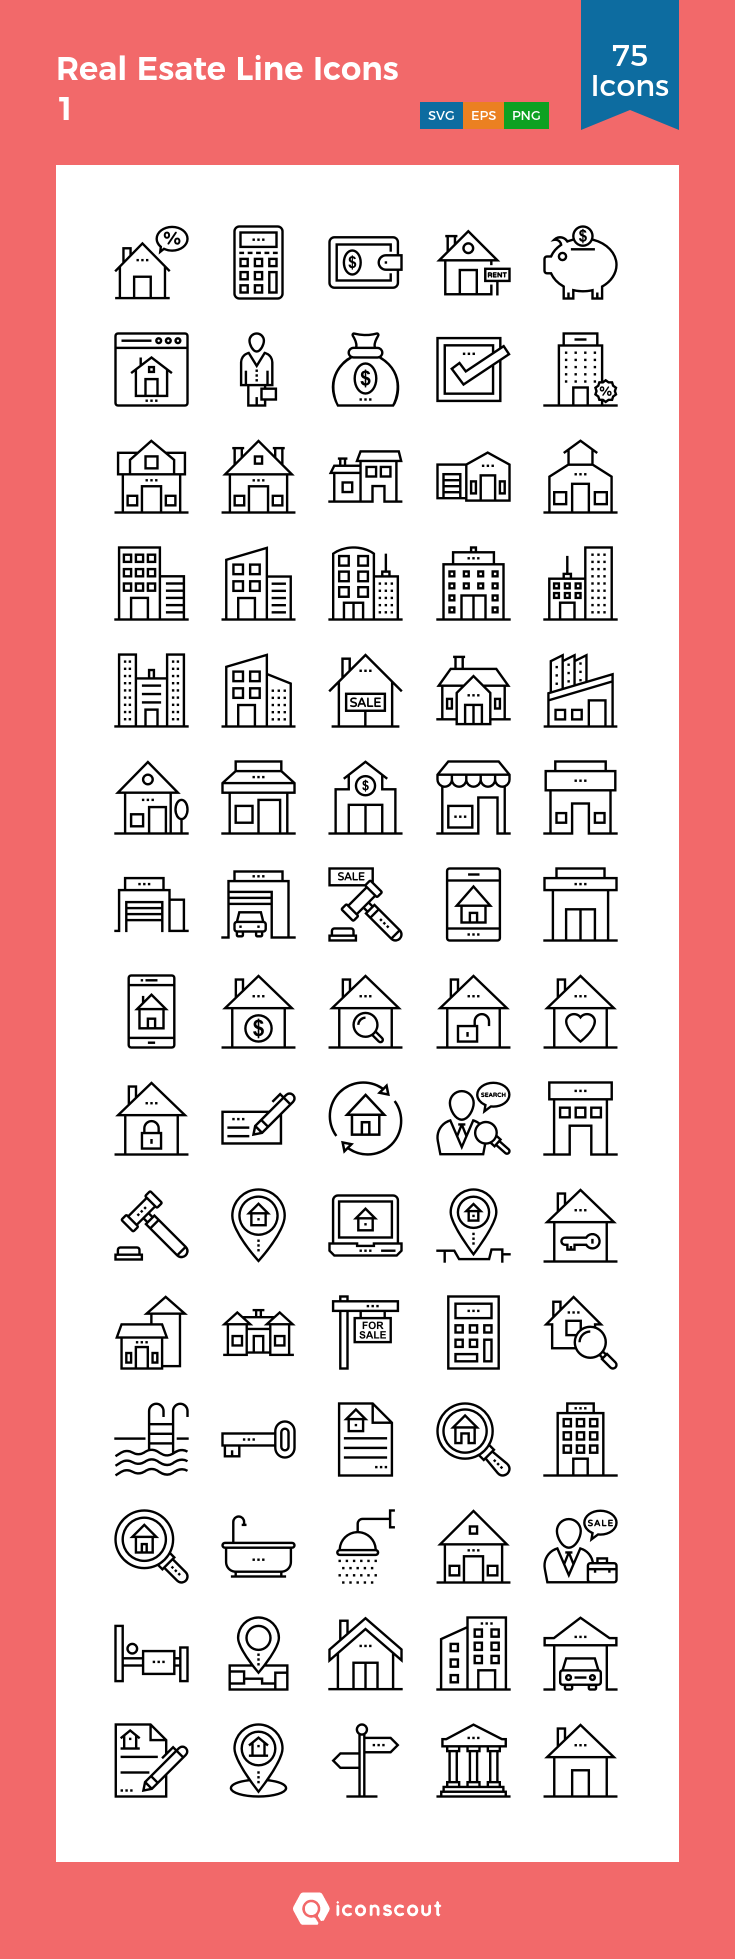 Download Real Esate Line Icons 1 Icon pack Available in